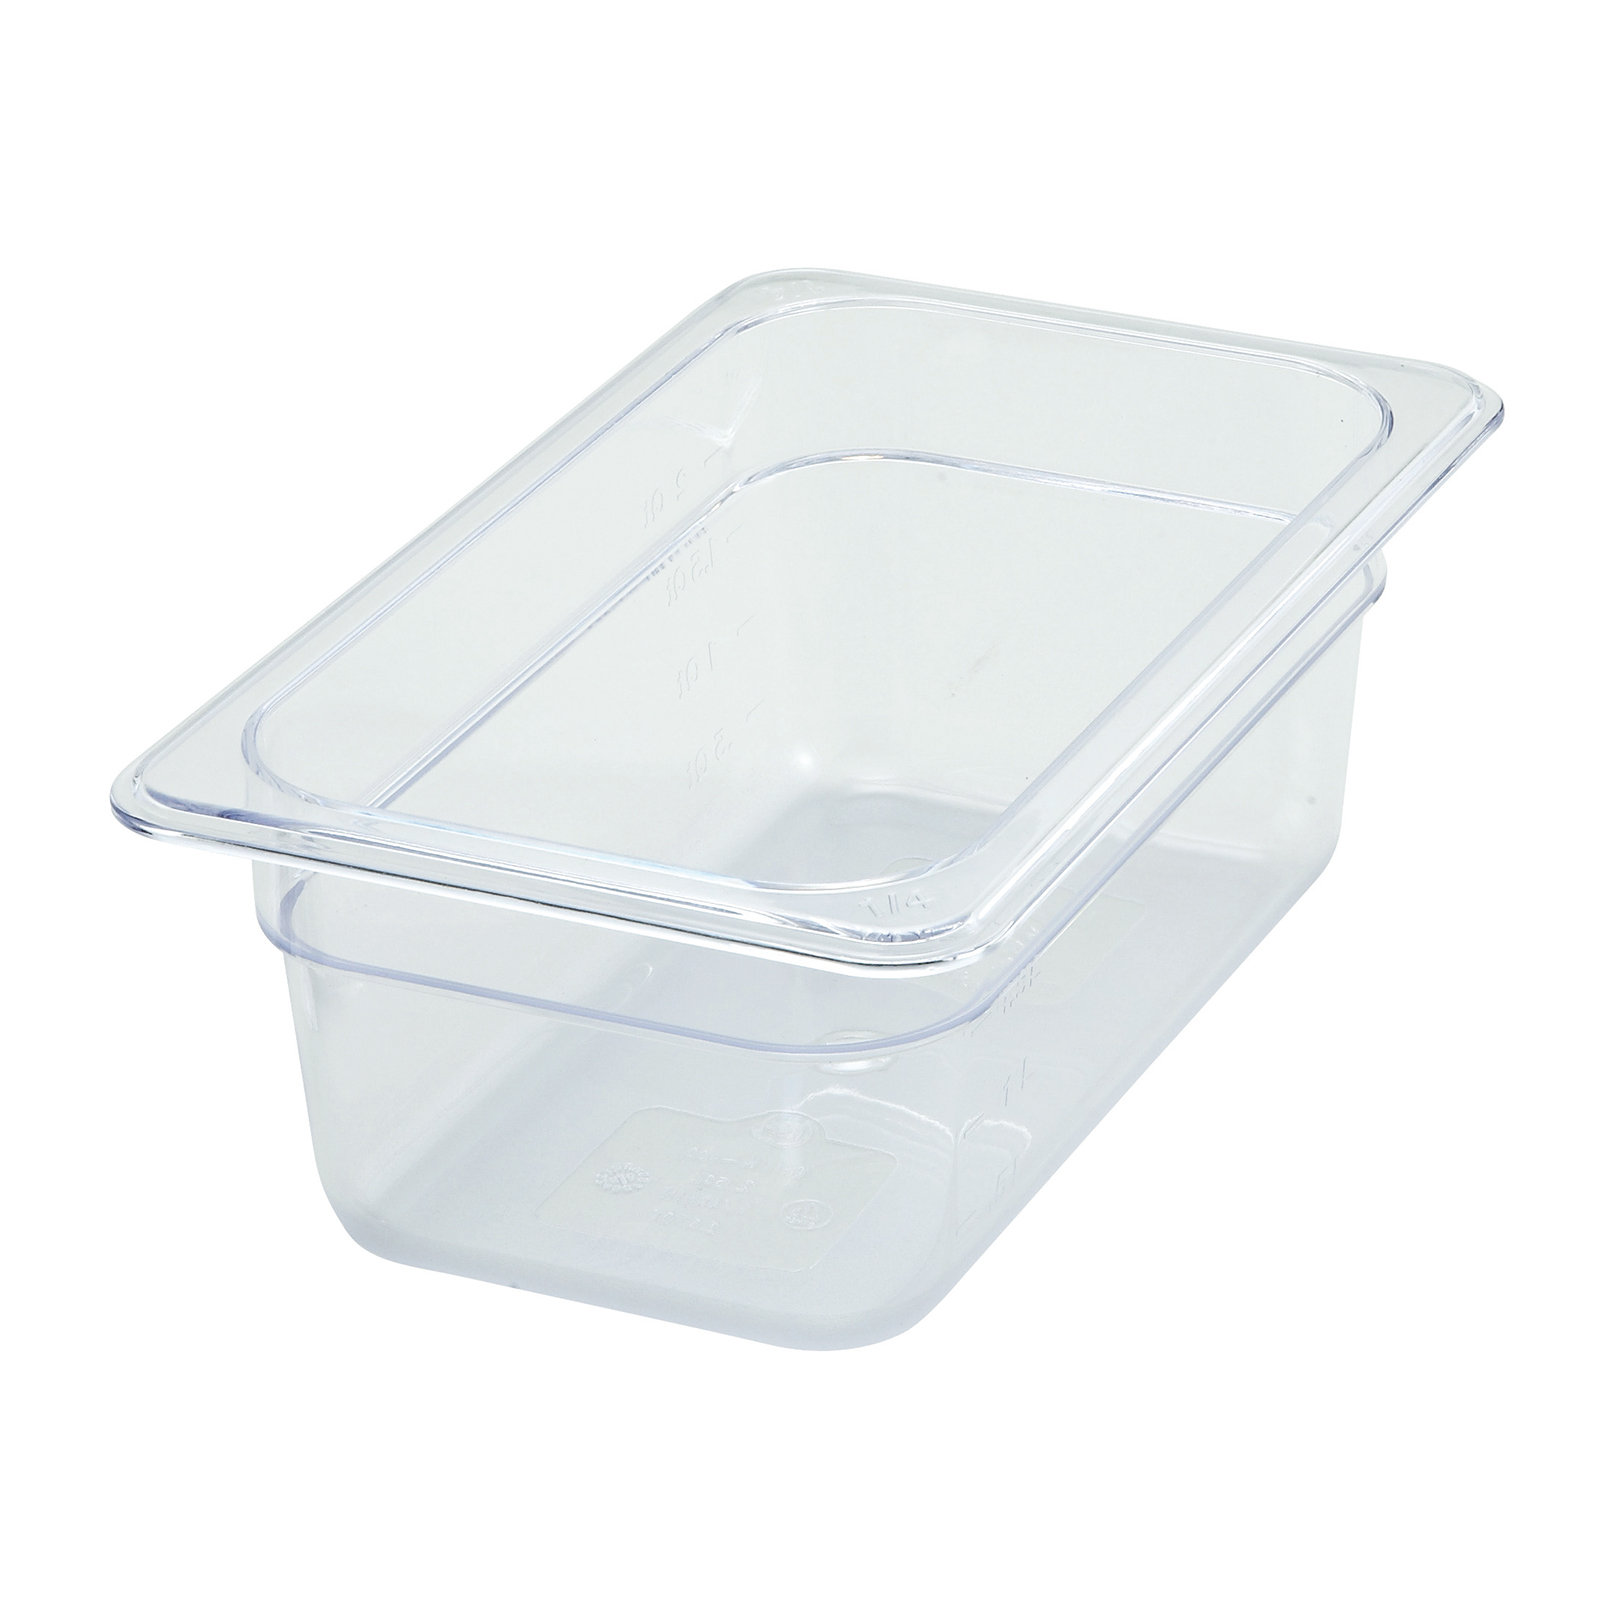 2410-030 Winco SP7404 food pan, 1/4 size 4in D, plastic